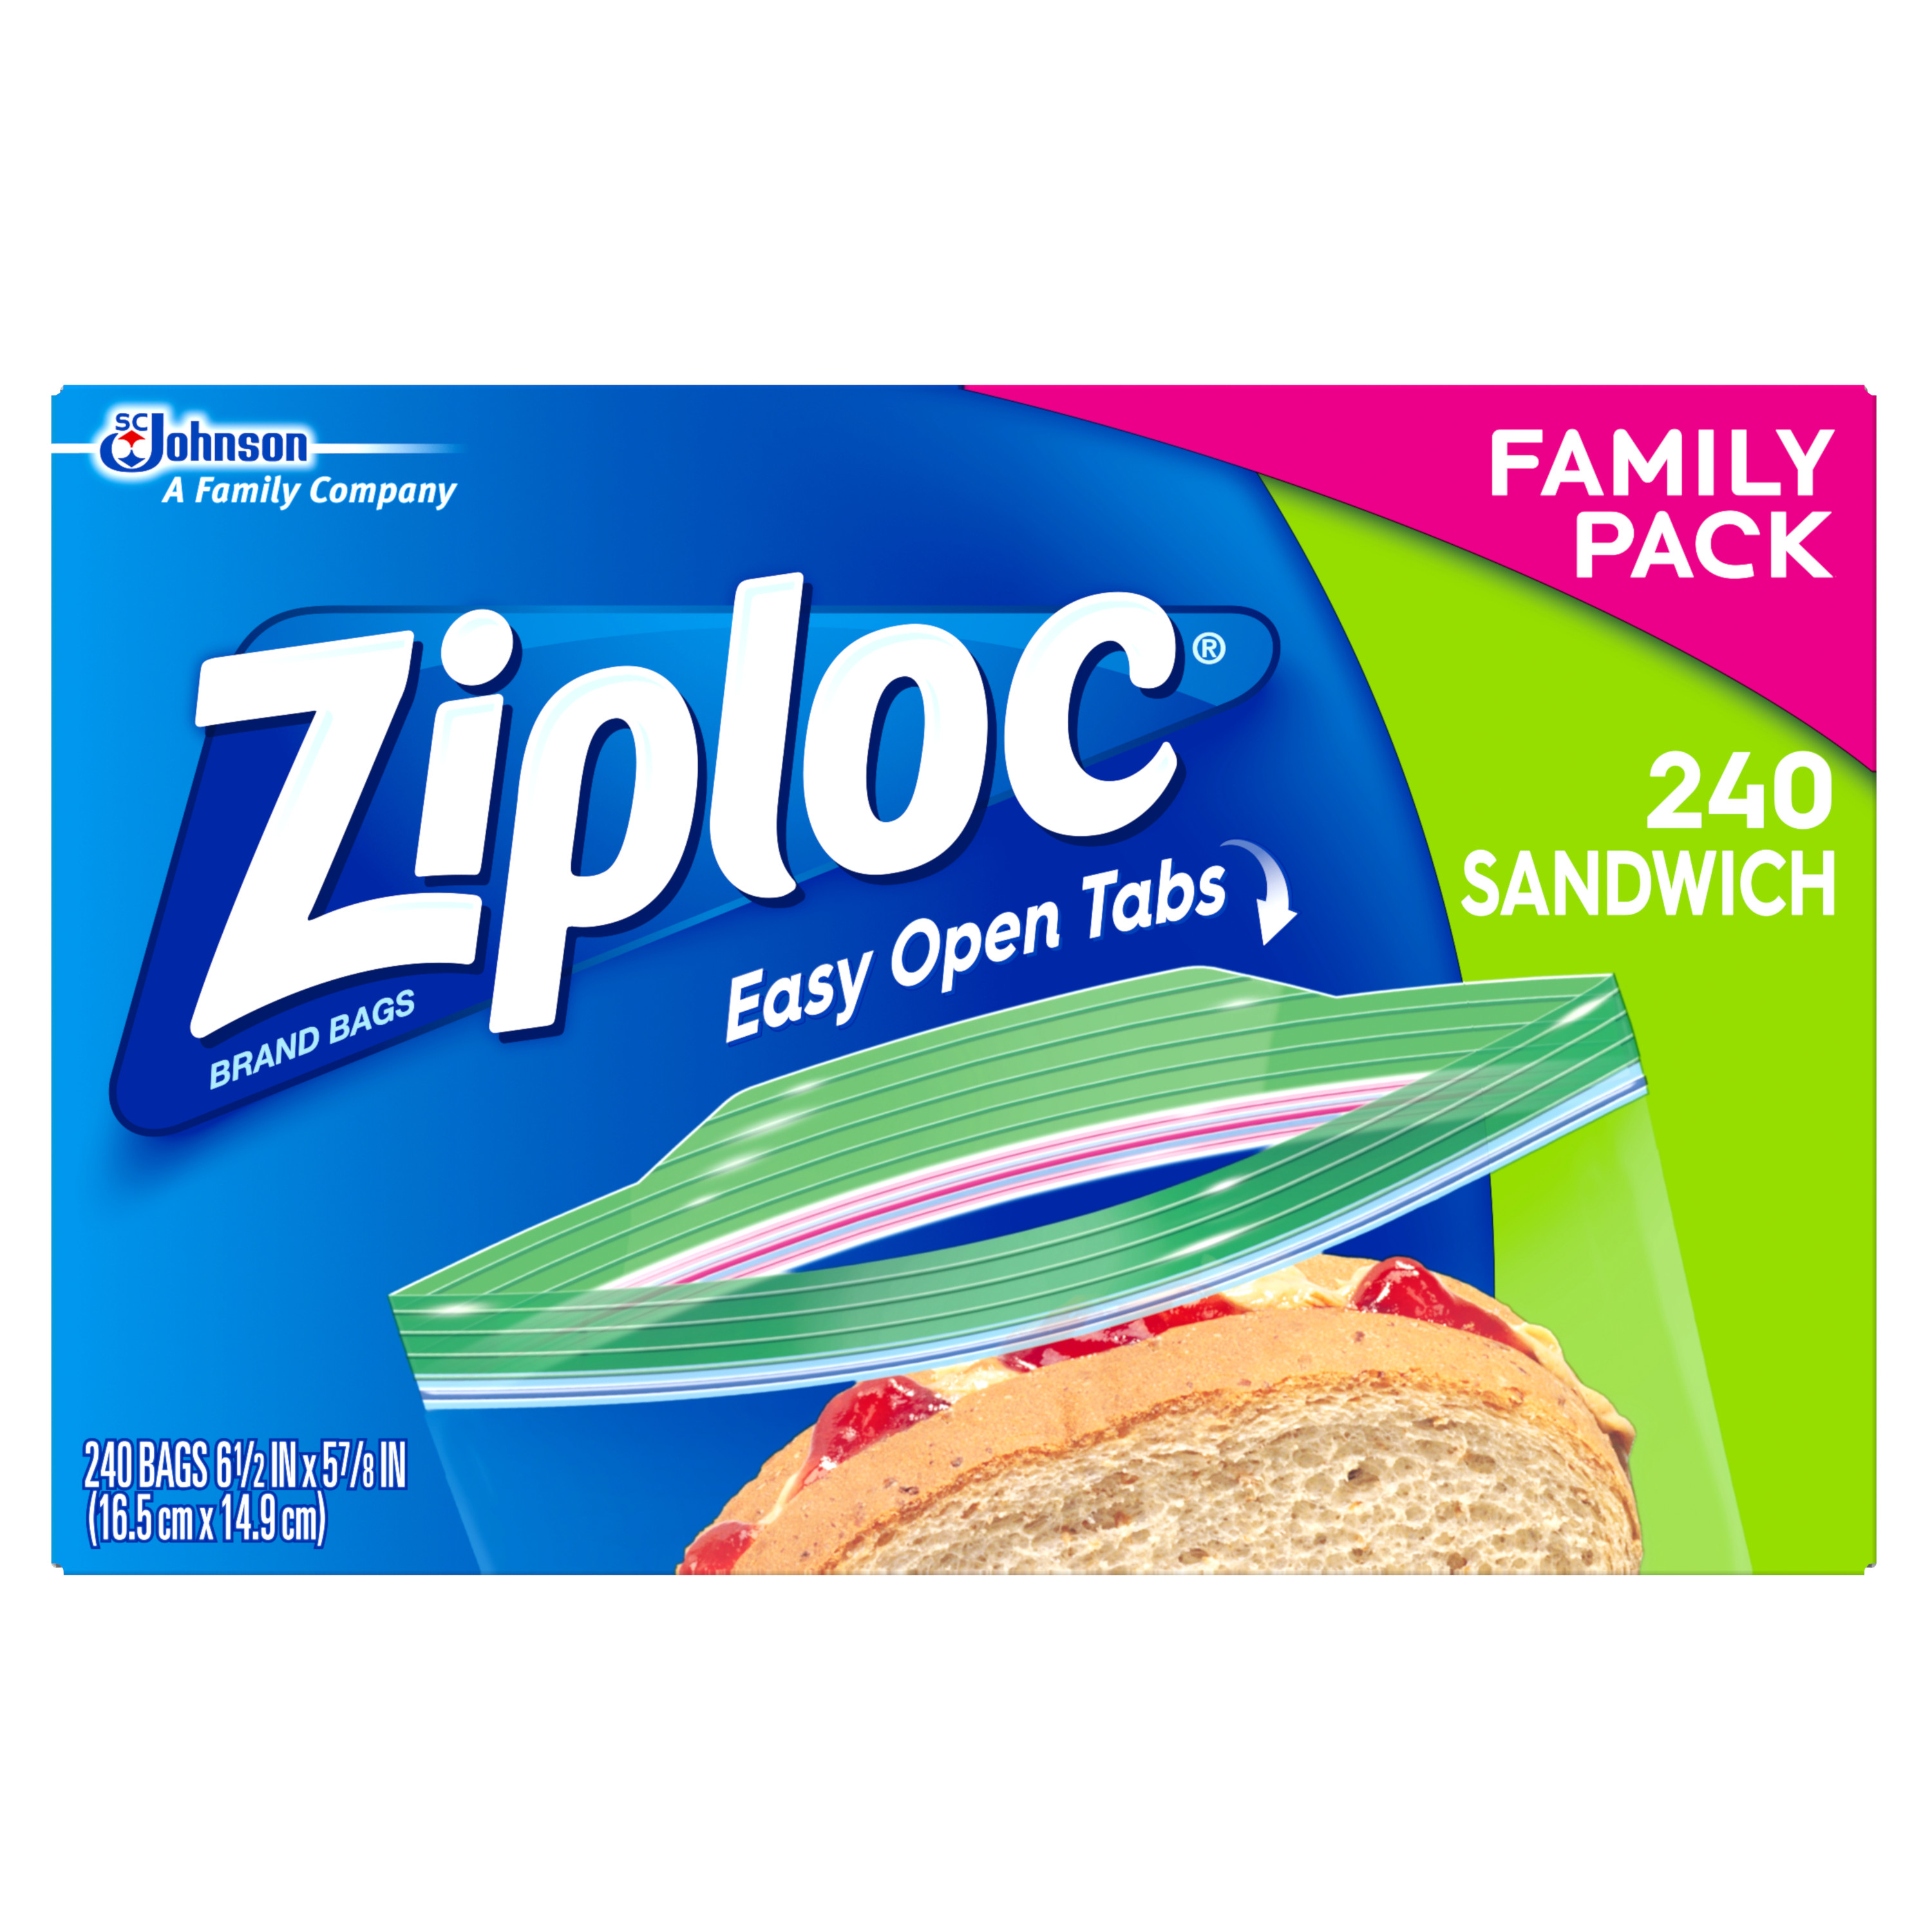 Ziploc Sandwich Bags, Family Value Pack, 240 count